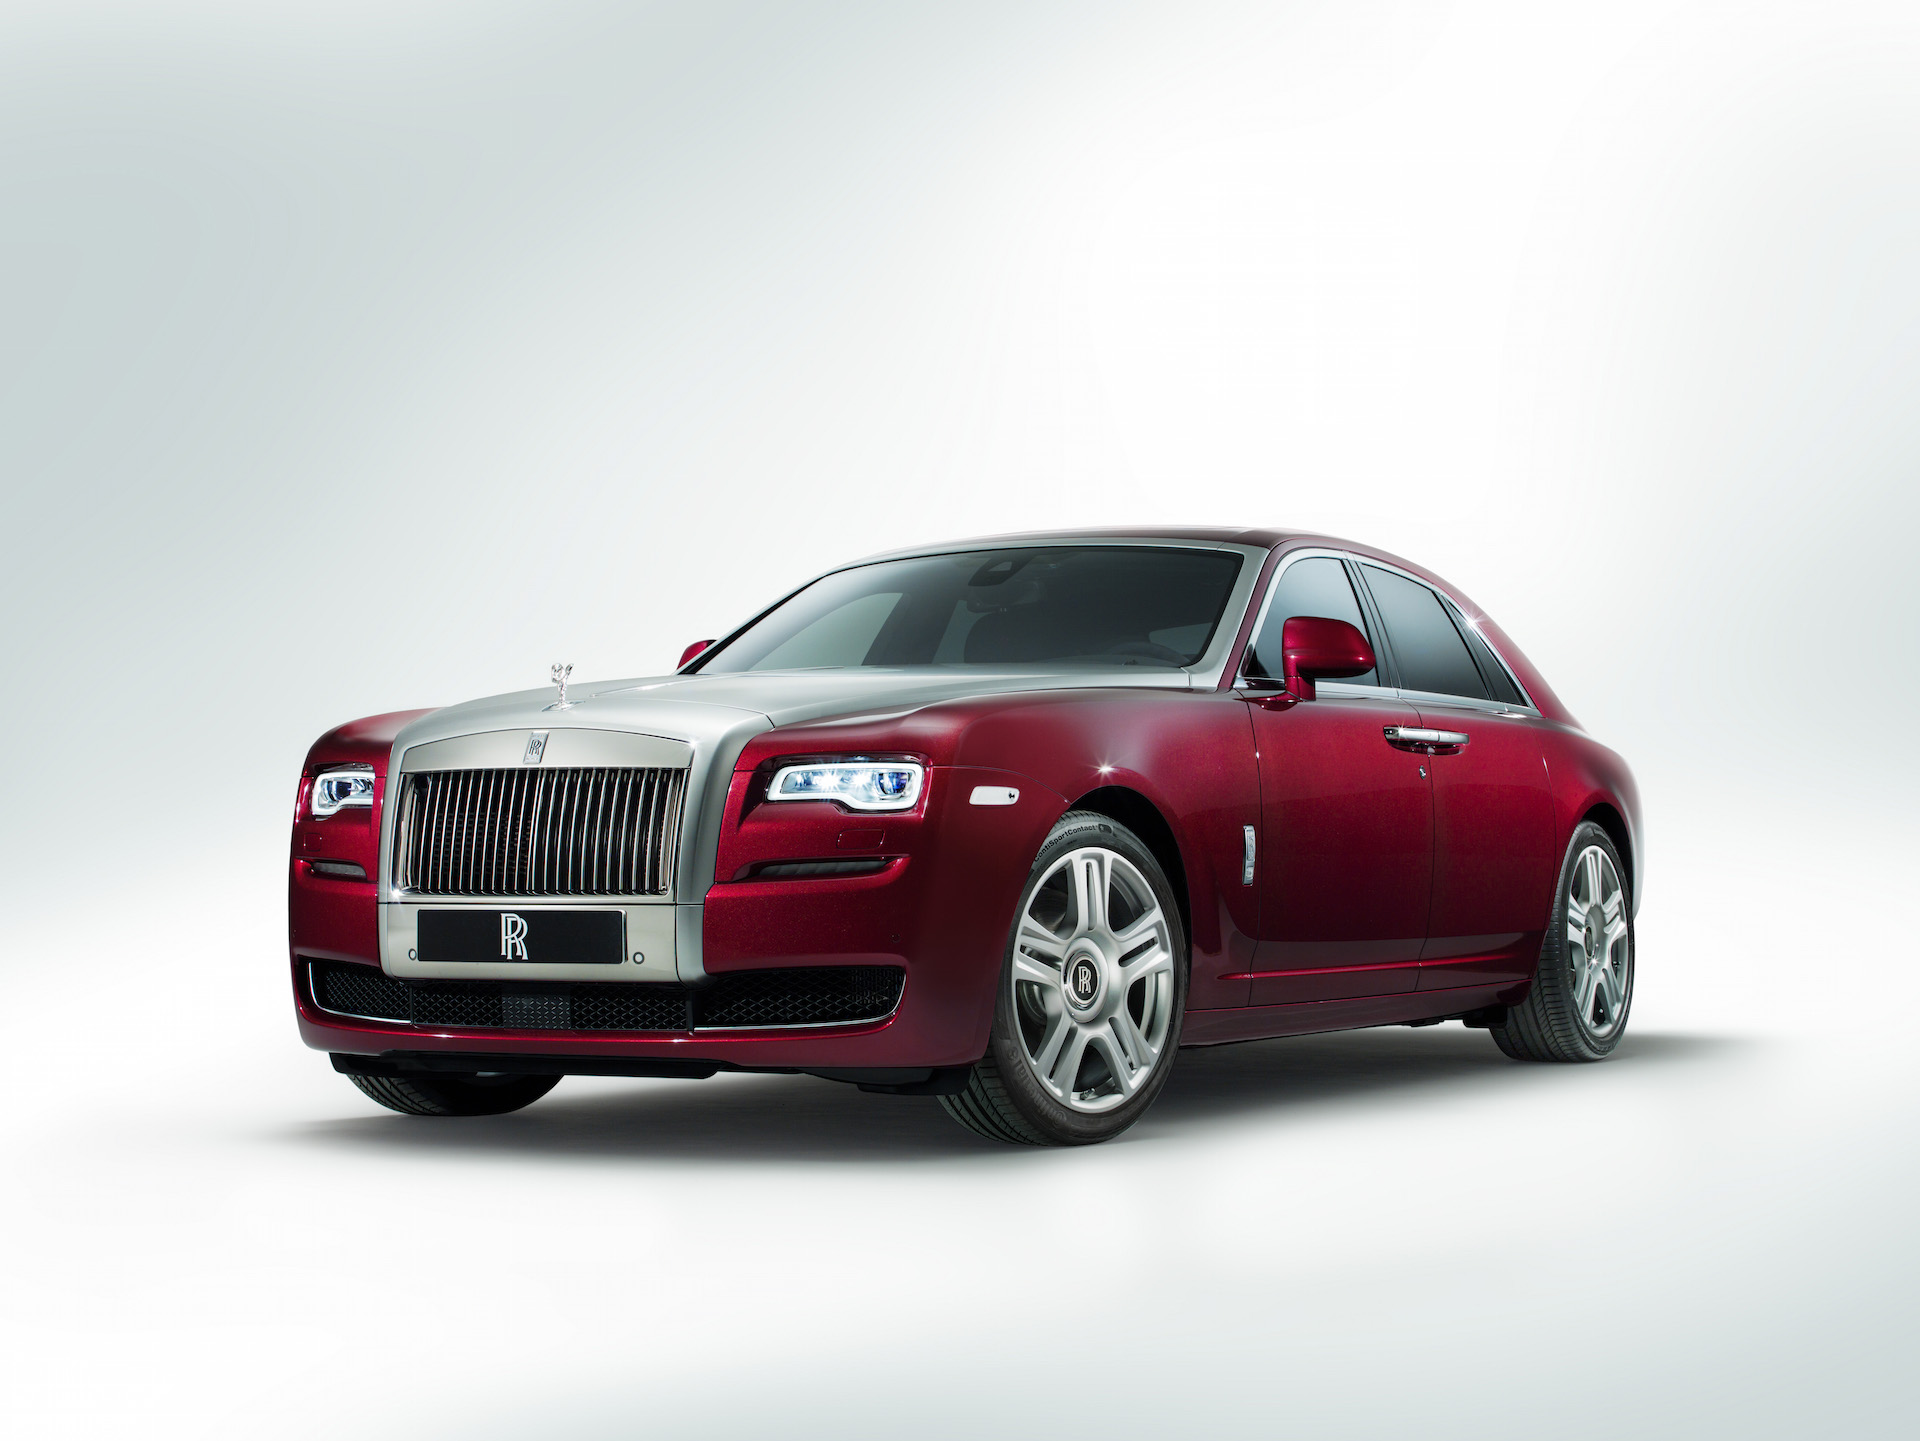 2016 Rolls-Royce Ghost Review, Ratings, Specs, Prices, and Photos - The Car Connection